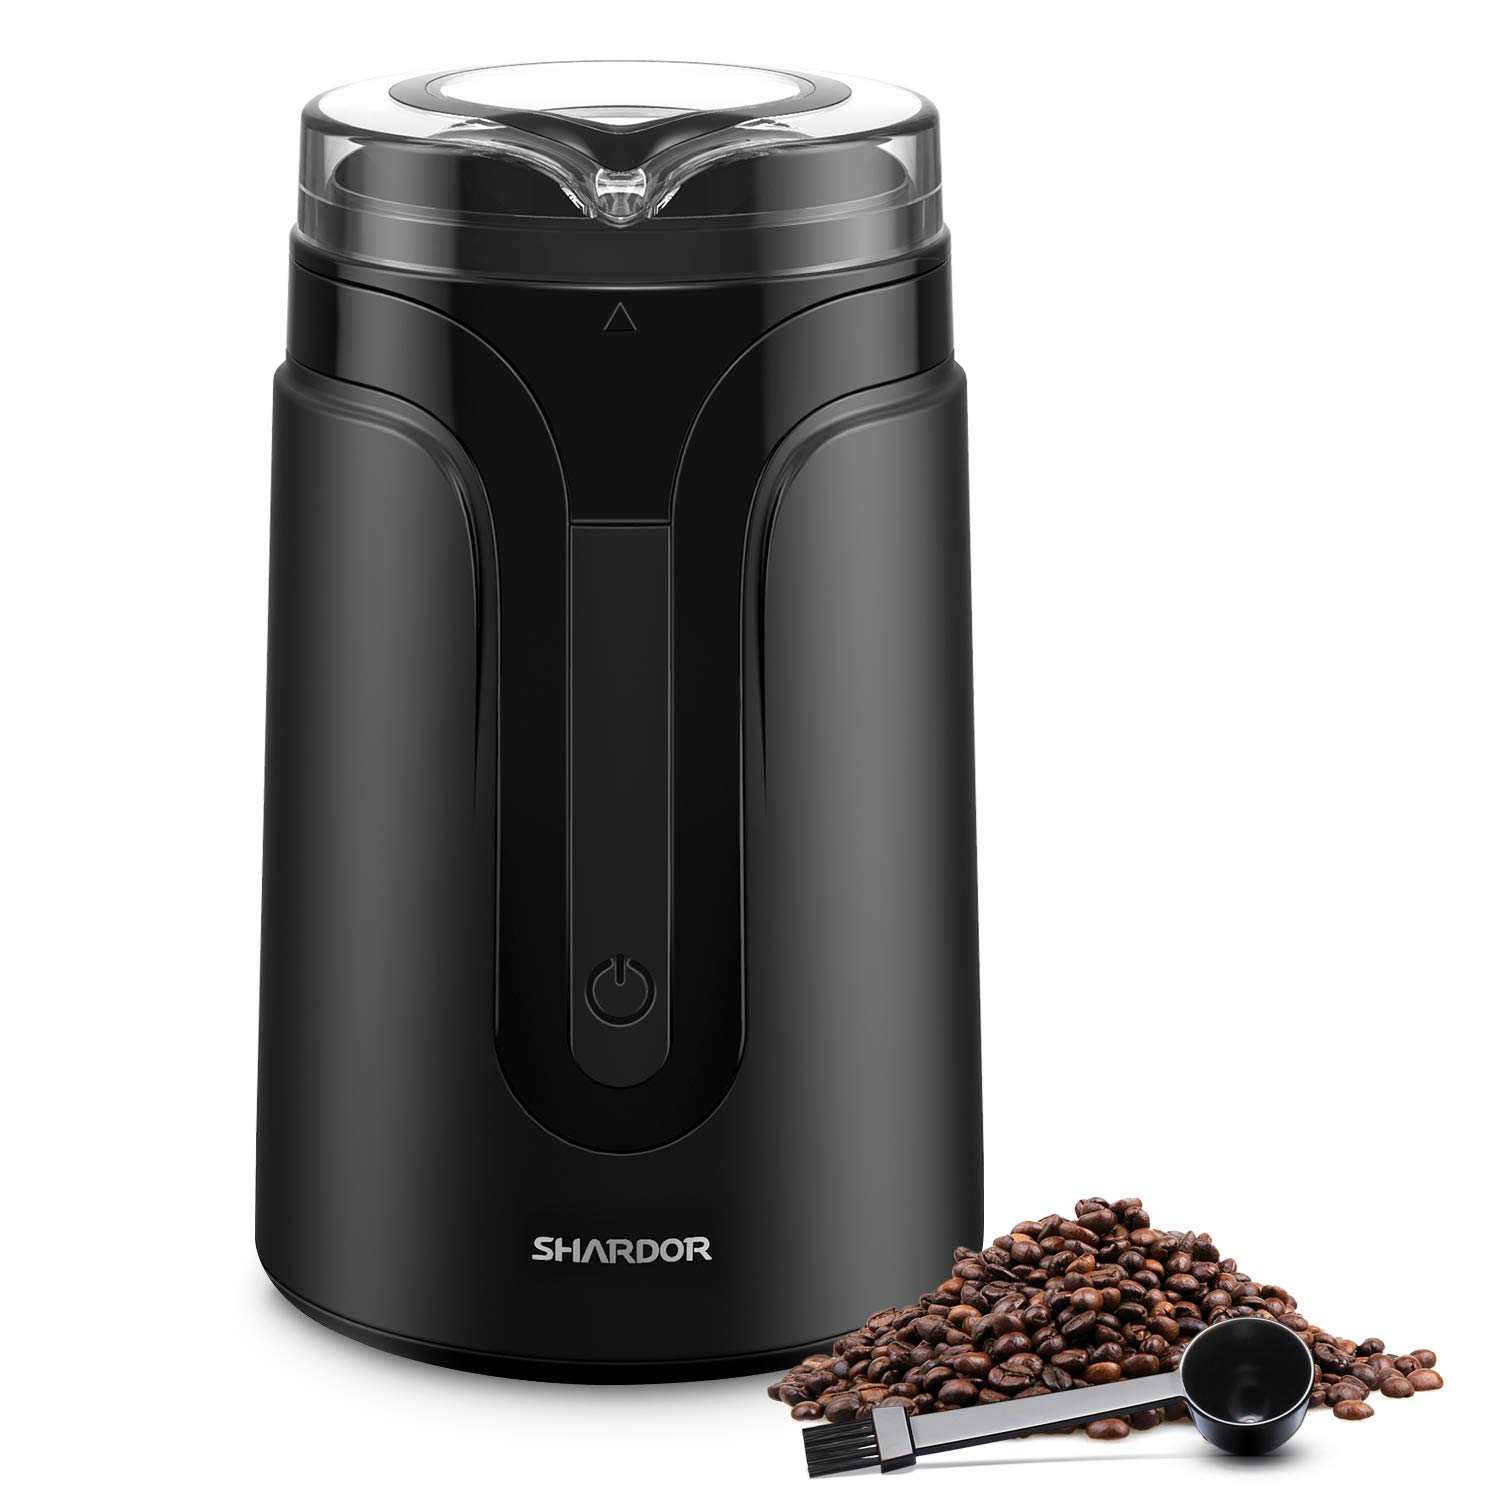 SHARDOR Electric Coffee Grinder Mill for 1-2 Person, Grinder for Spices, Herbs, Nuts, Grains,Black by SHARDOR